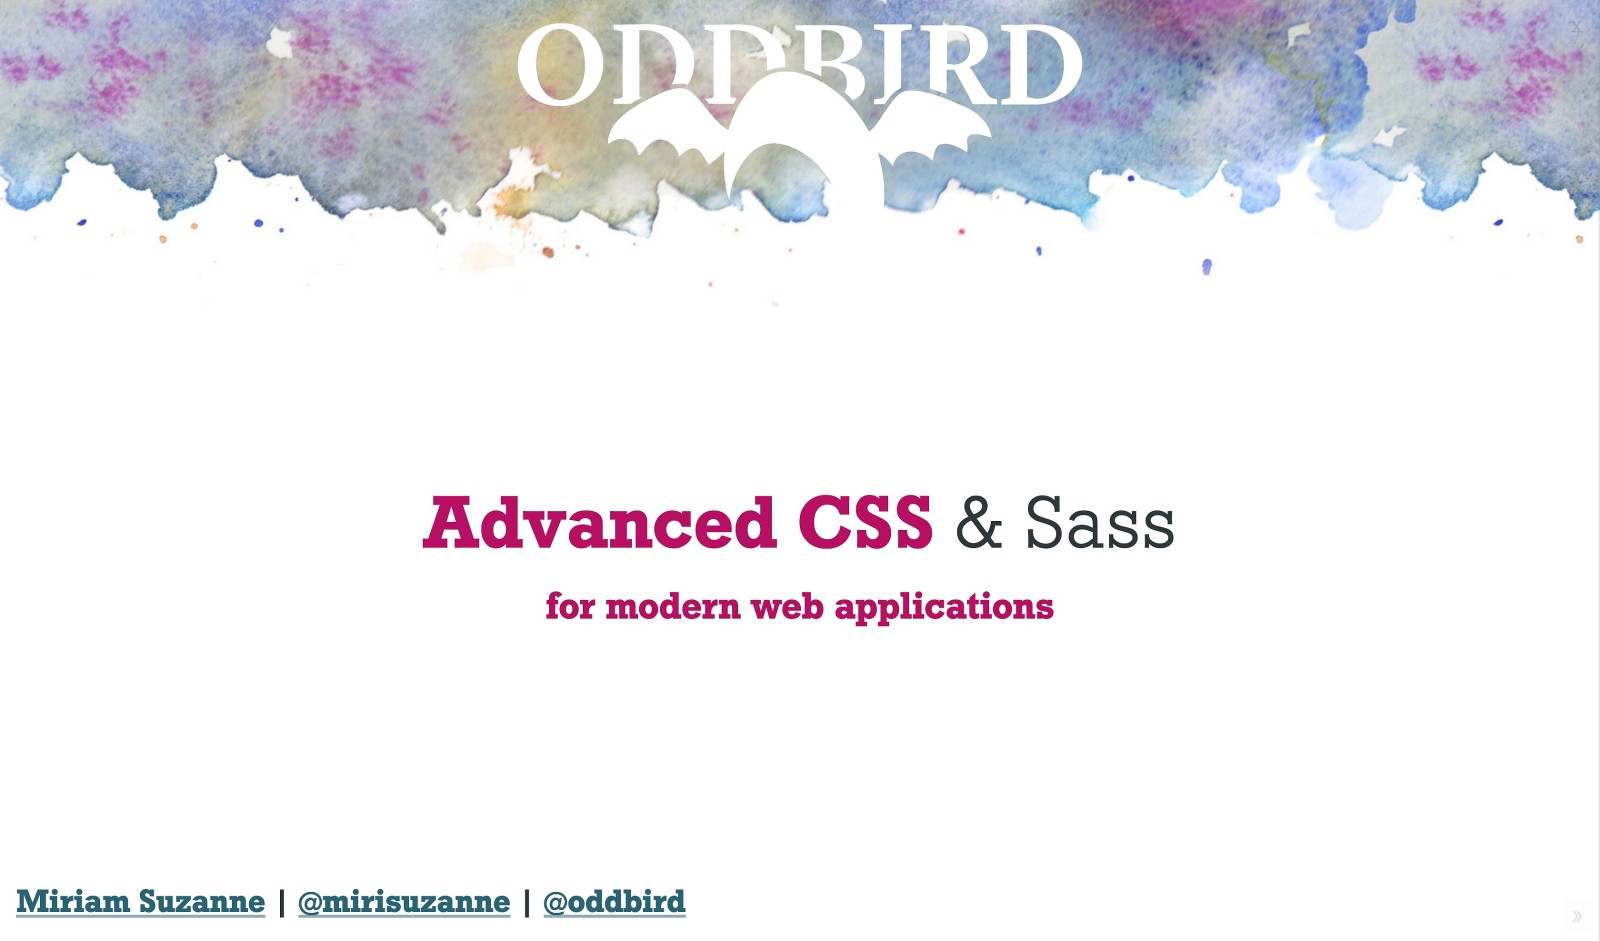 Advanced CSS & Sass for Modern Applications